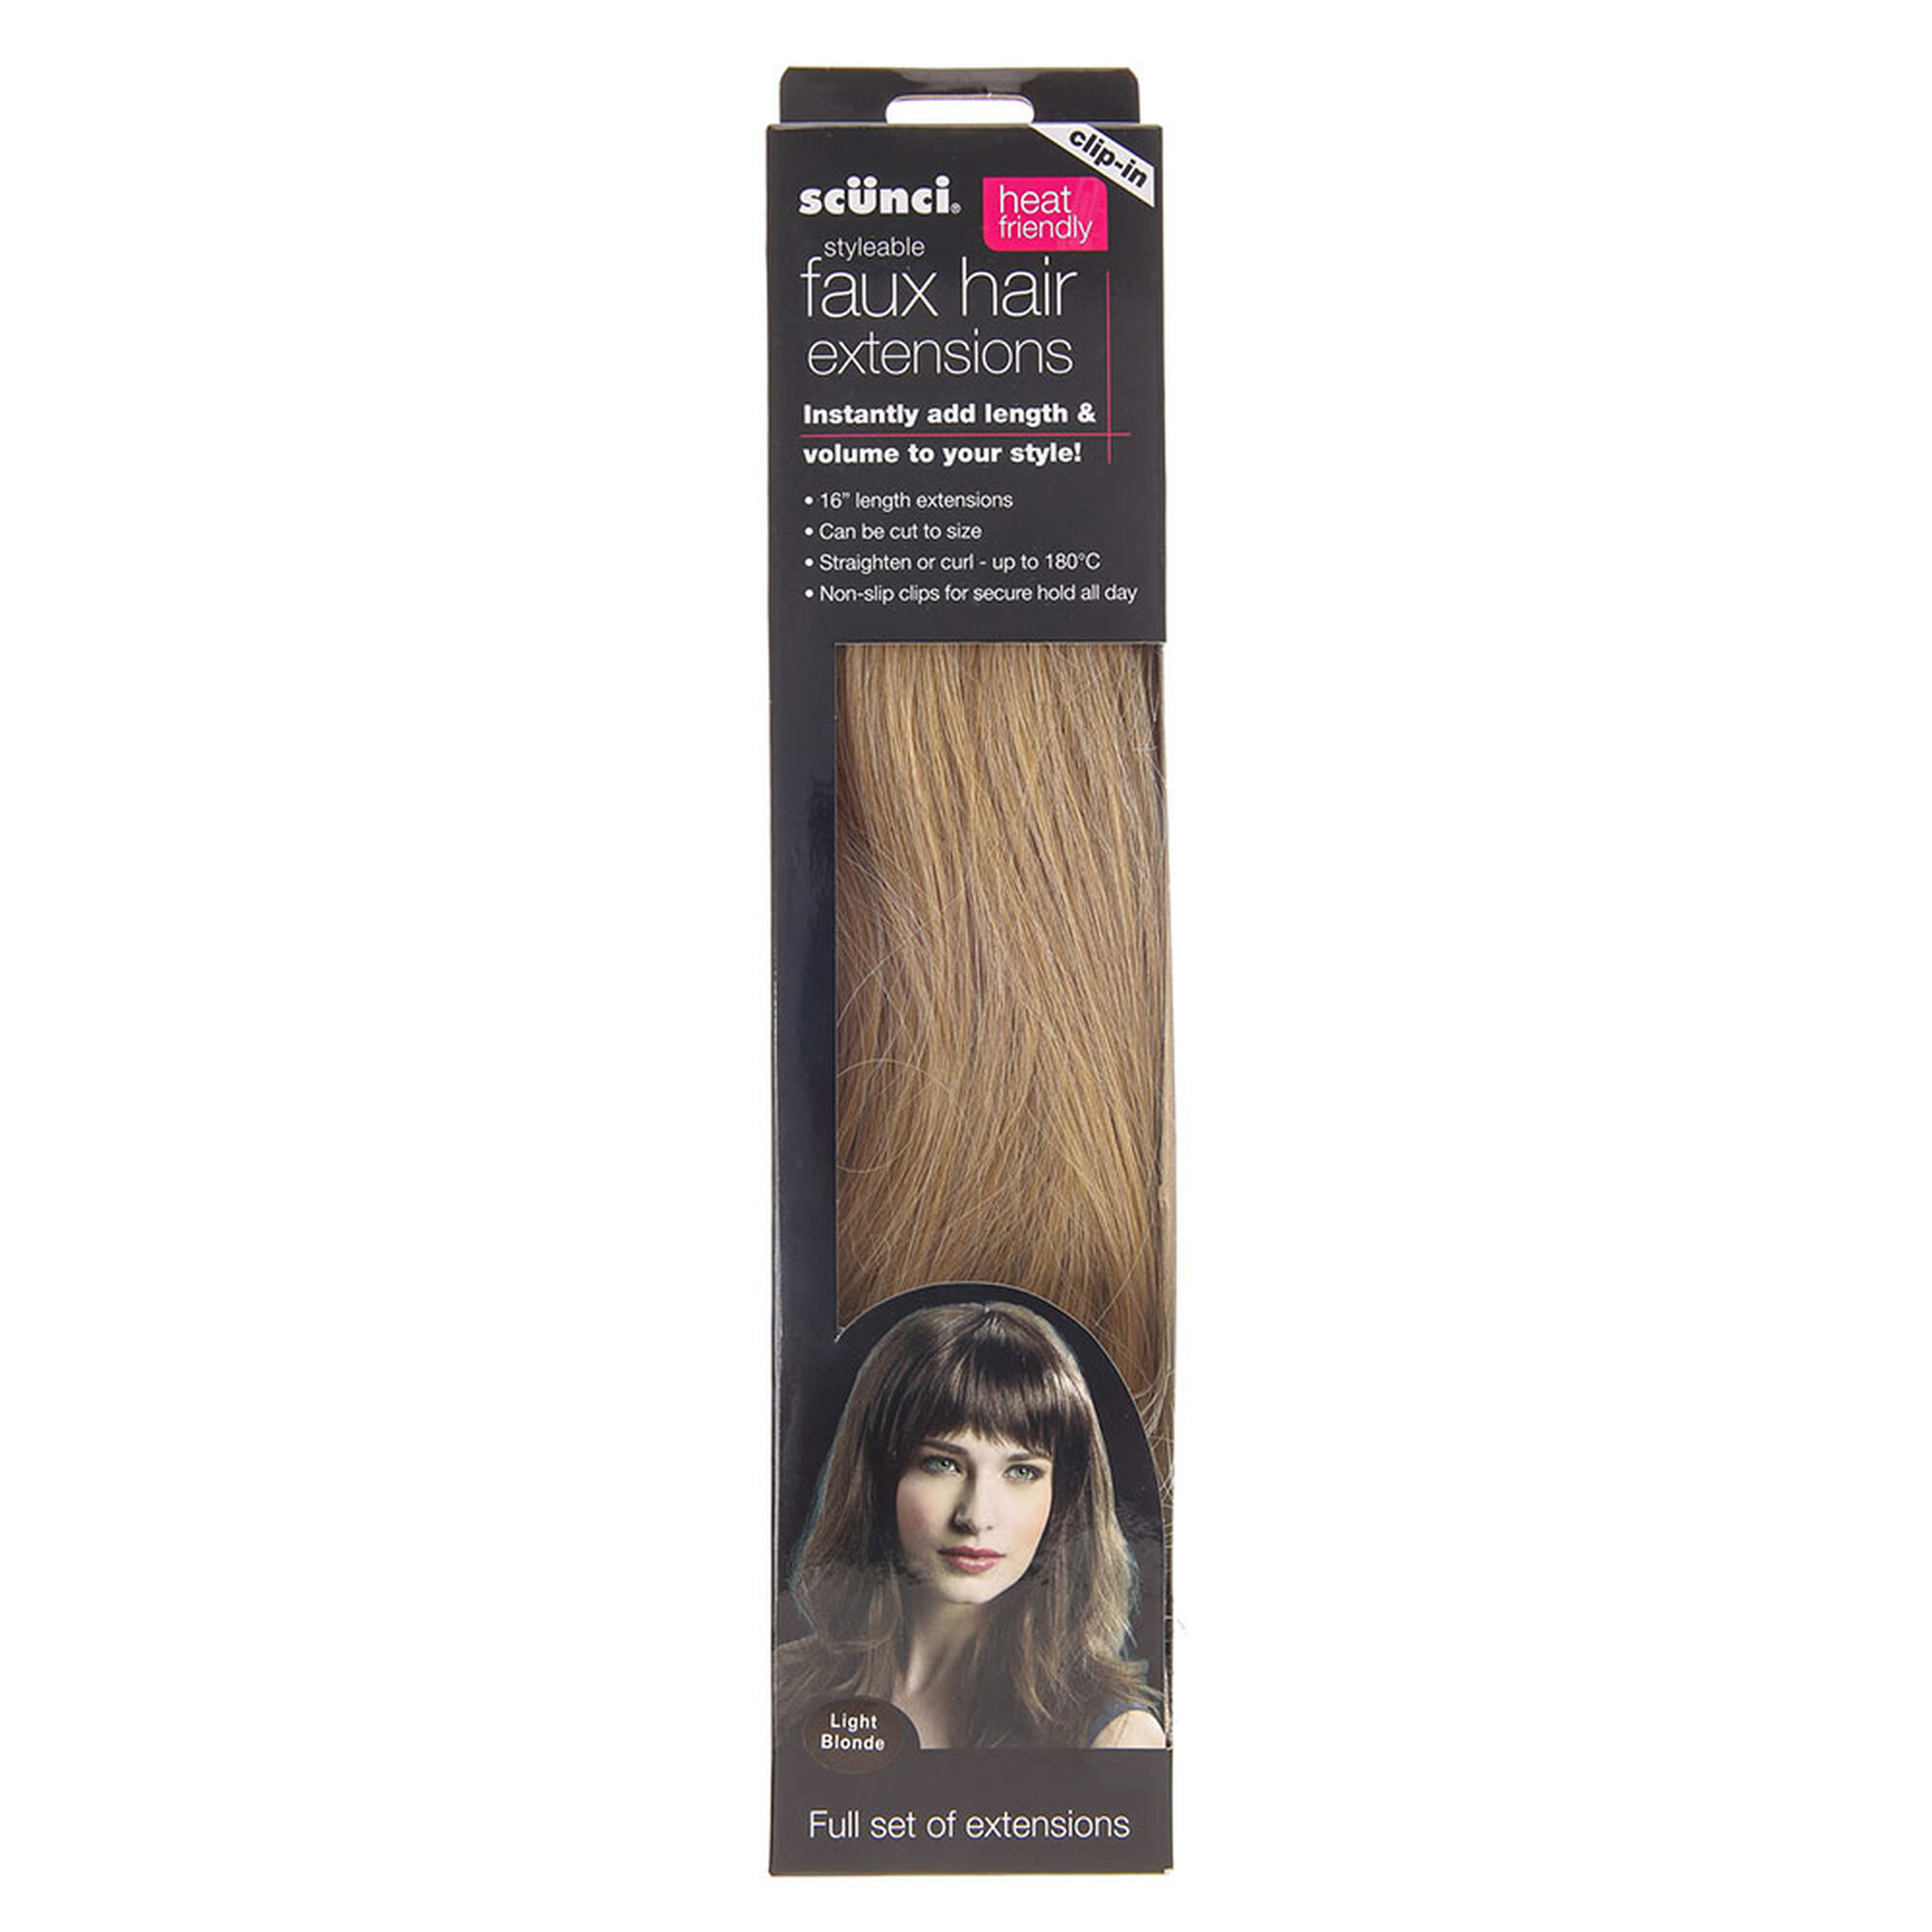 Scunci light blonde faux hair extensions claires scunci light blonde faux hair extensions pmusecretfo Gallery